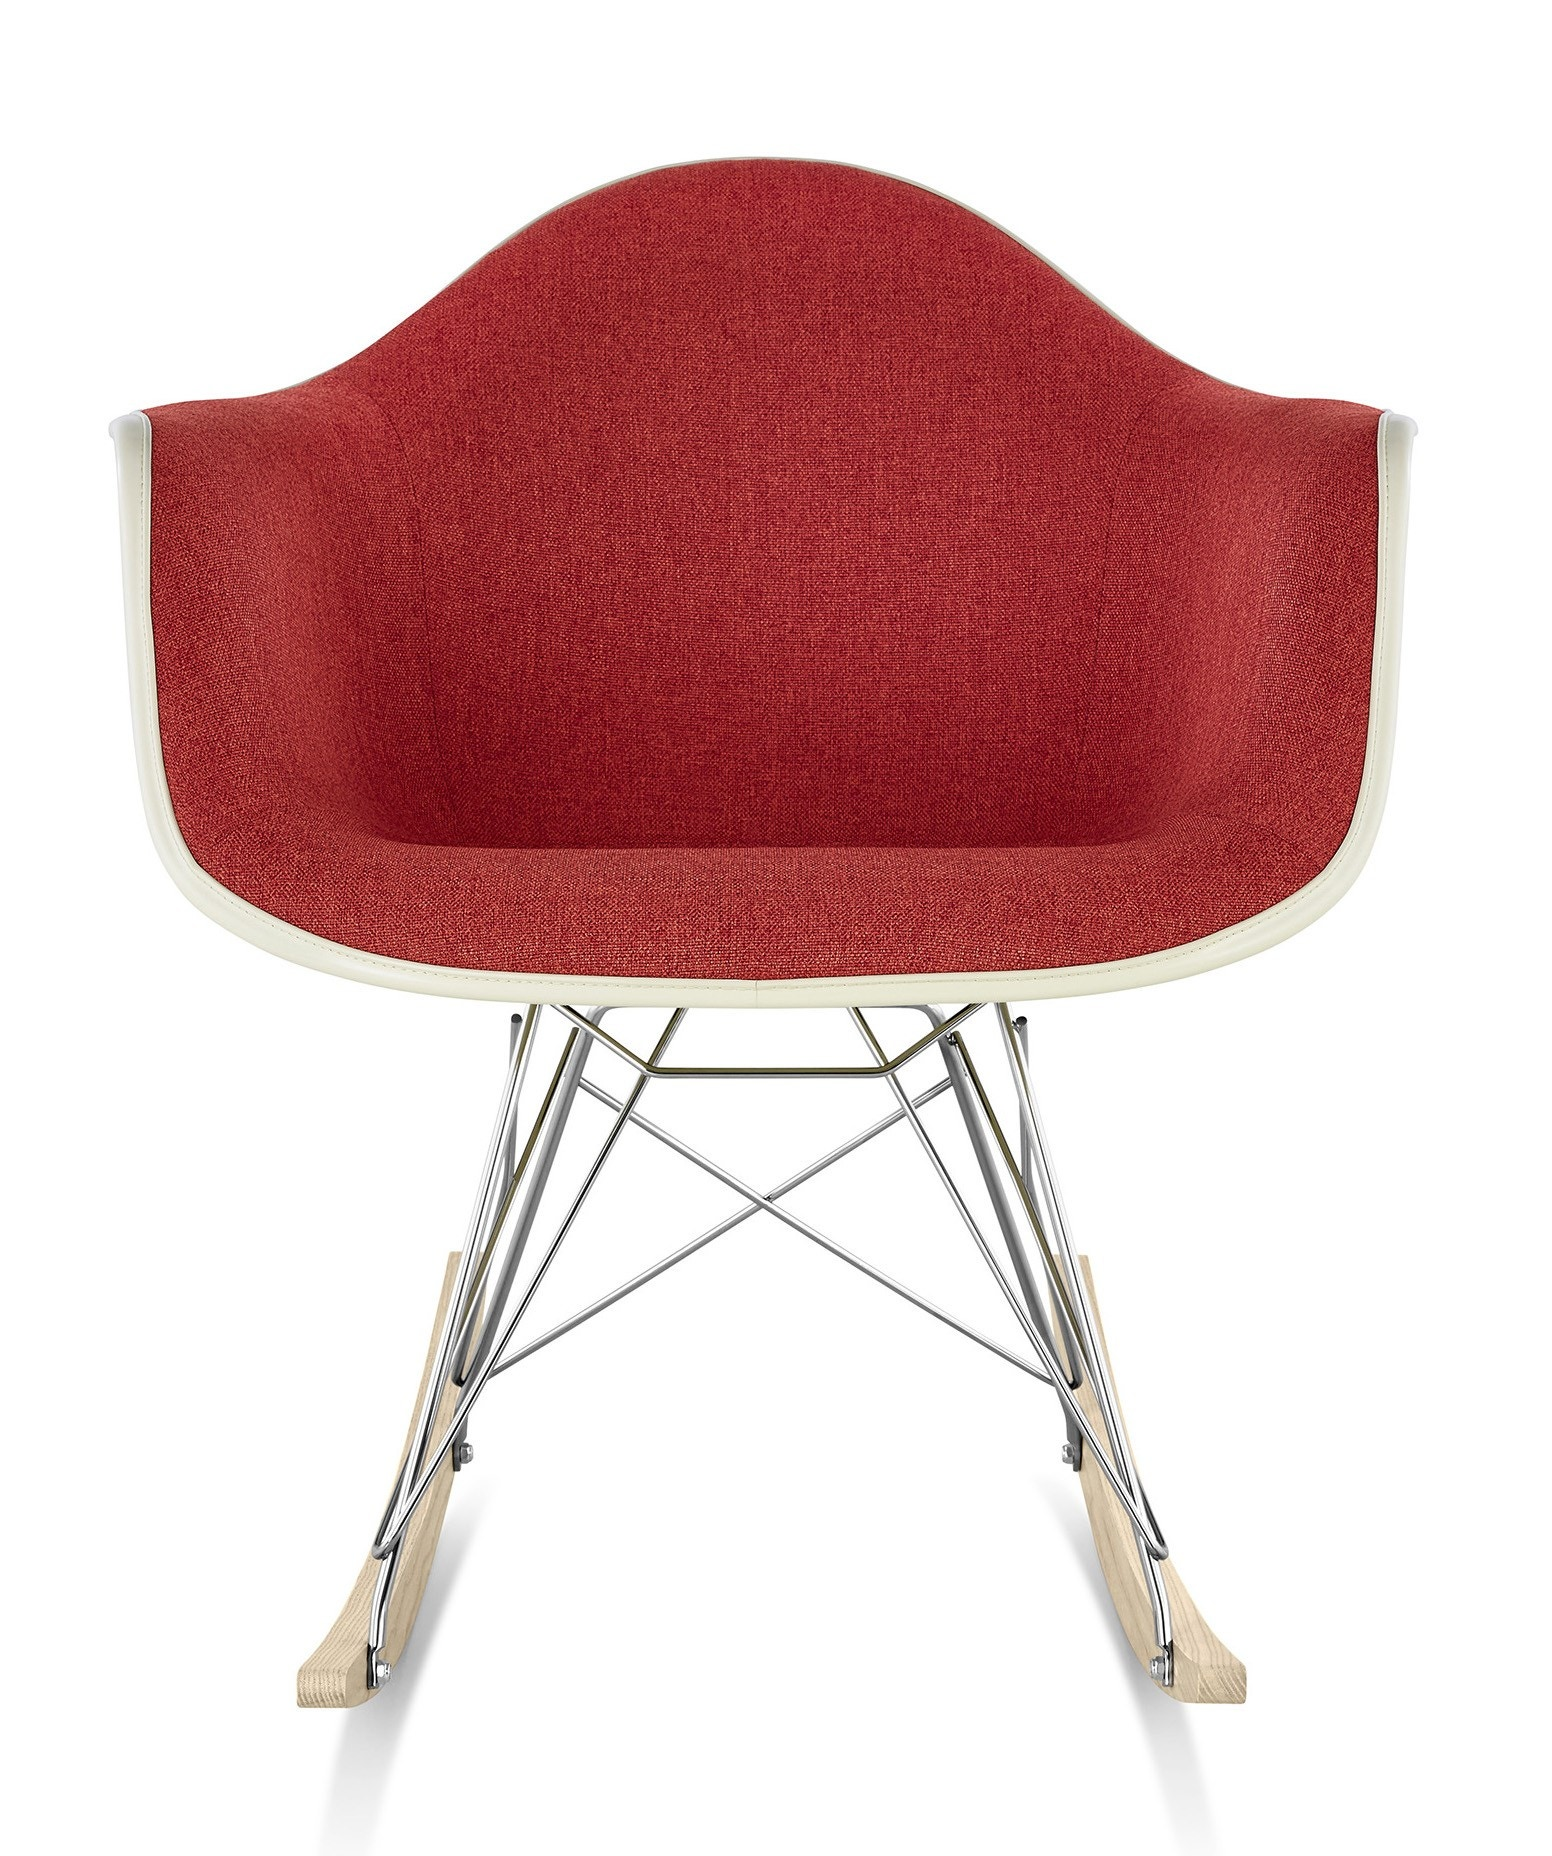 Herman Miller Eames® Molded Fiberglass Armchair Rocker Base Upholstered Shell